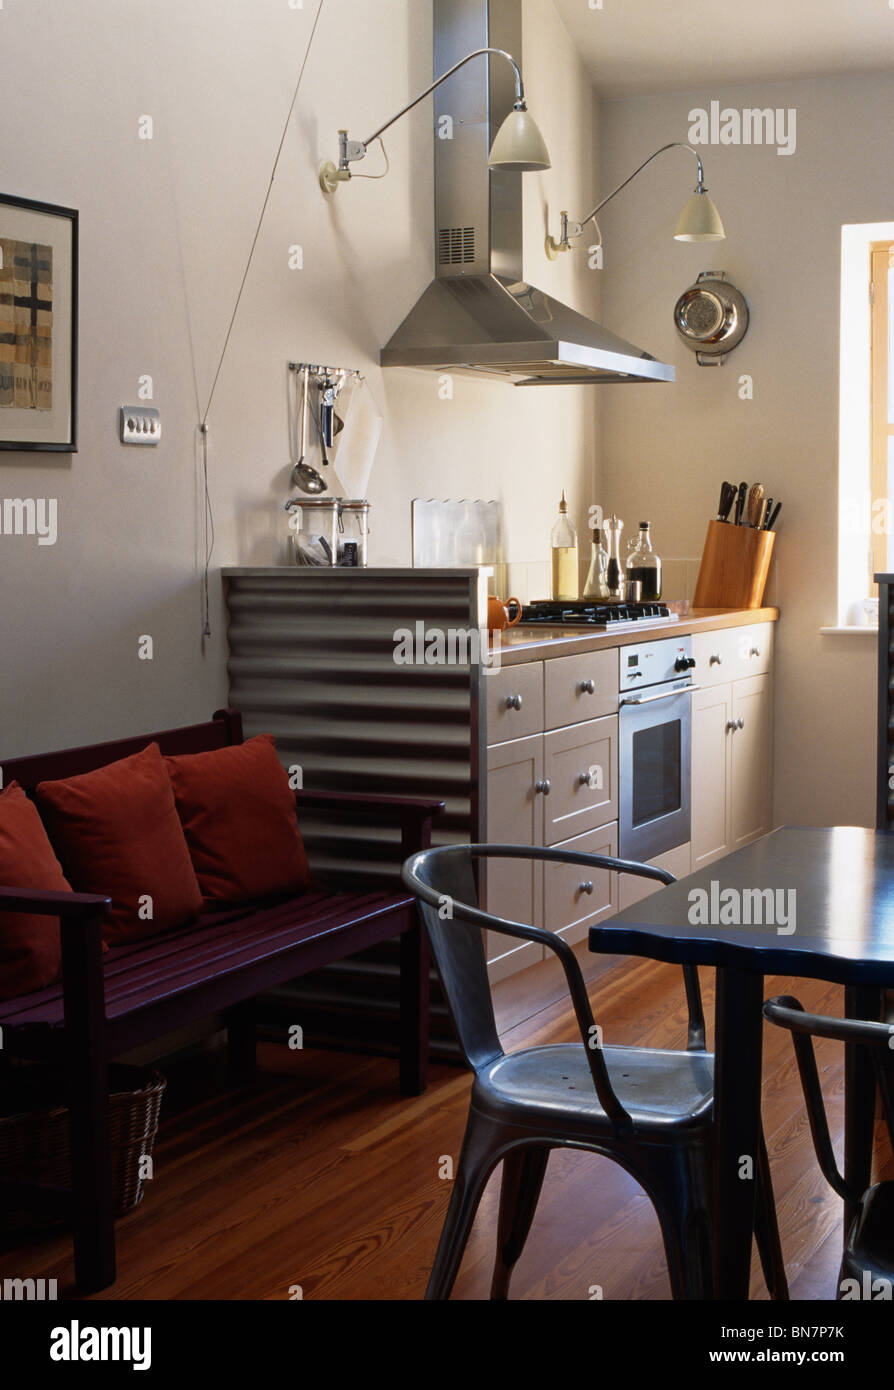 Metal Chairs At Table In Modern Kitchen Dining Room With Wooden Settle Beside Unit